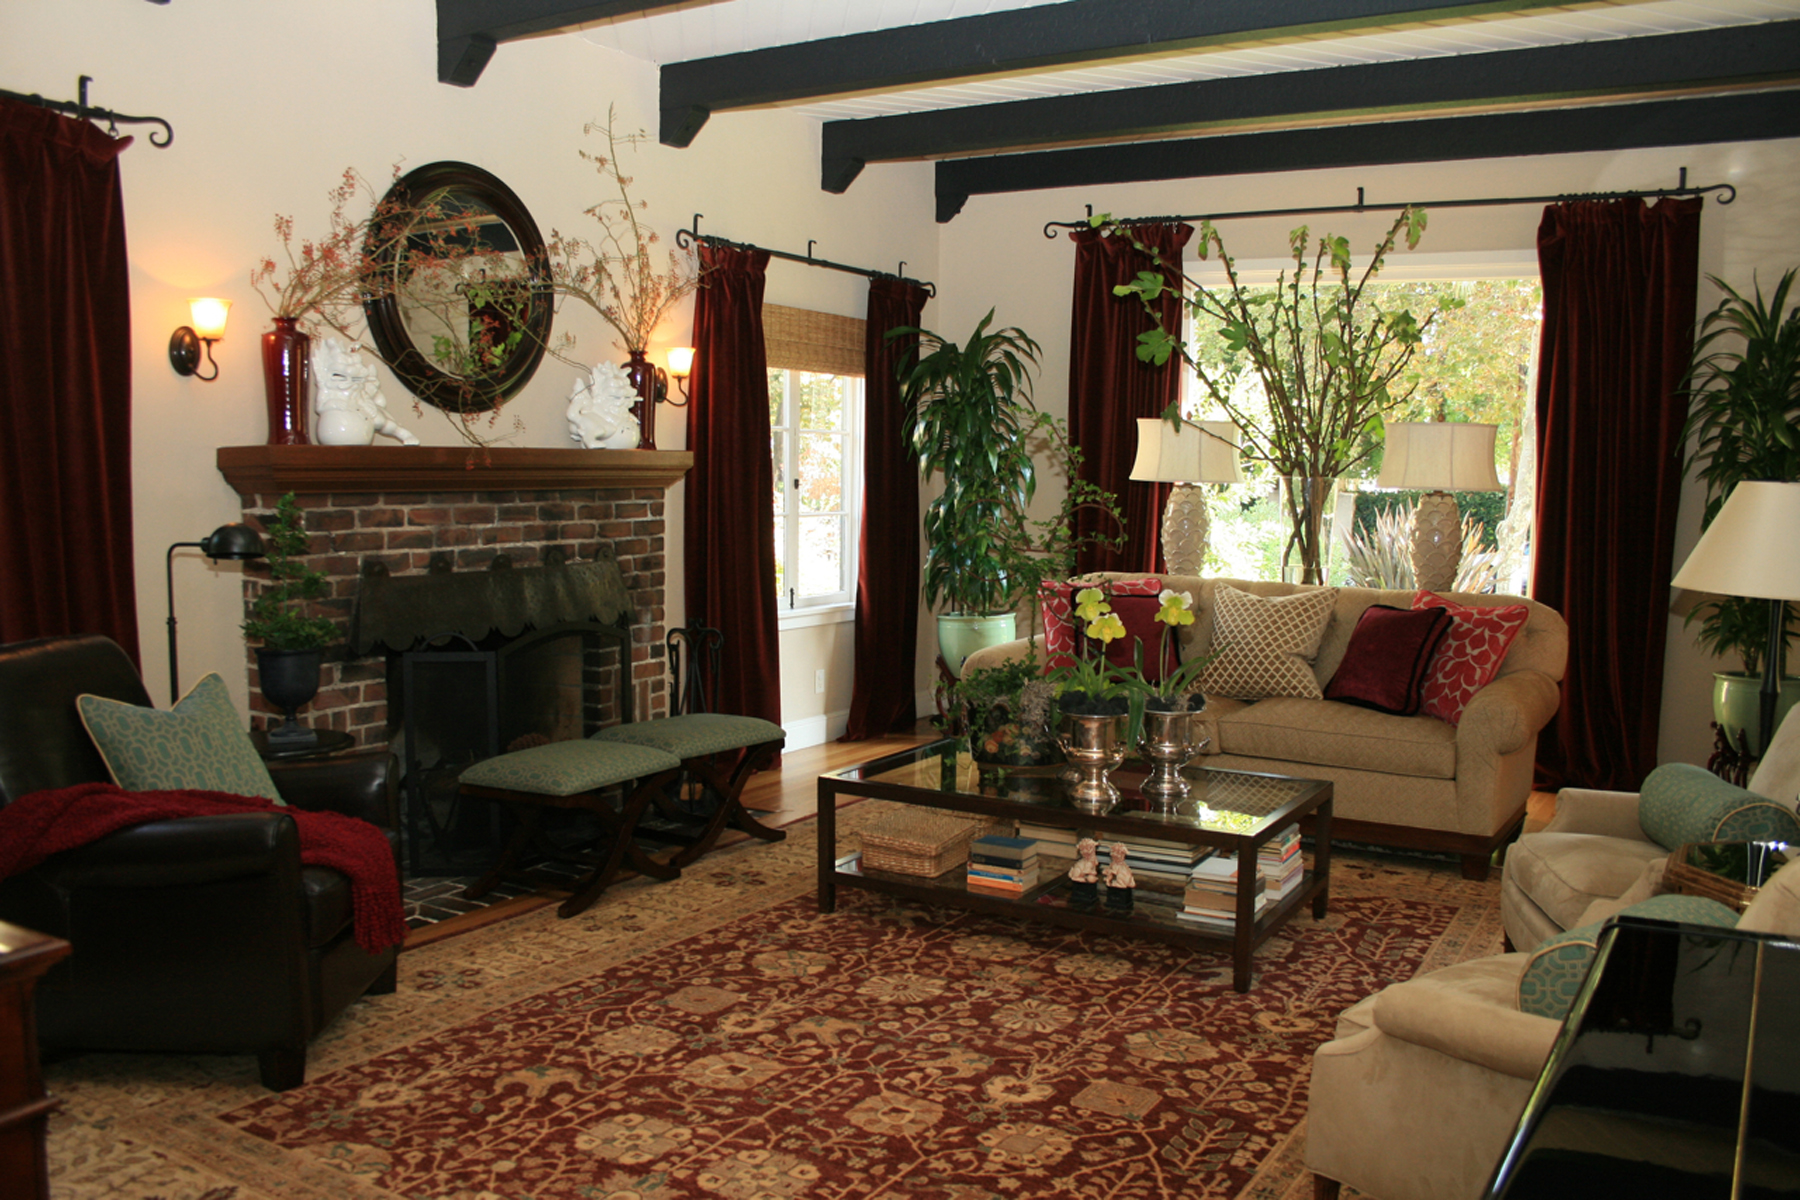 Beautiful Interior Amazing Classic Spanish Style Of Living Room Design With Stone  Fireplace Red Curtain LArge Carpet